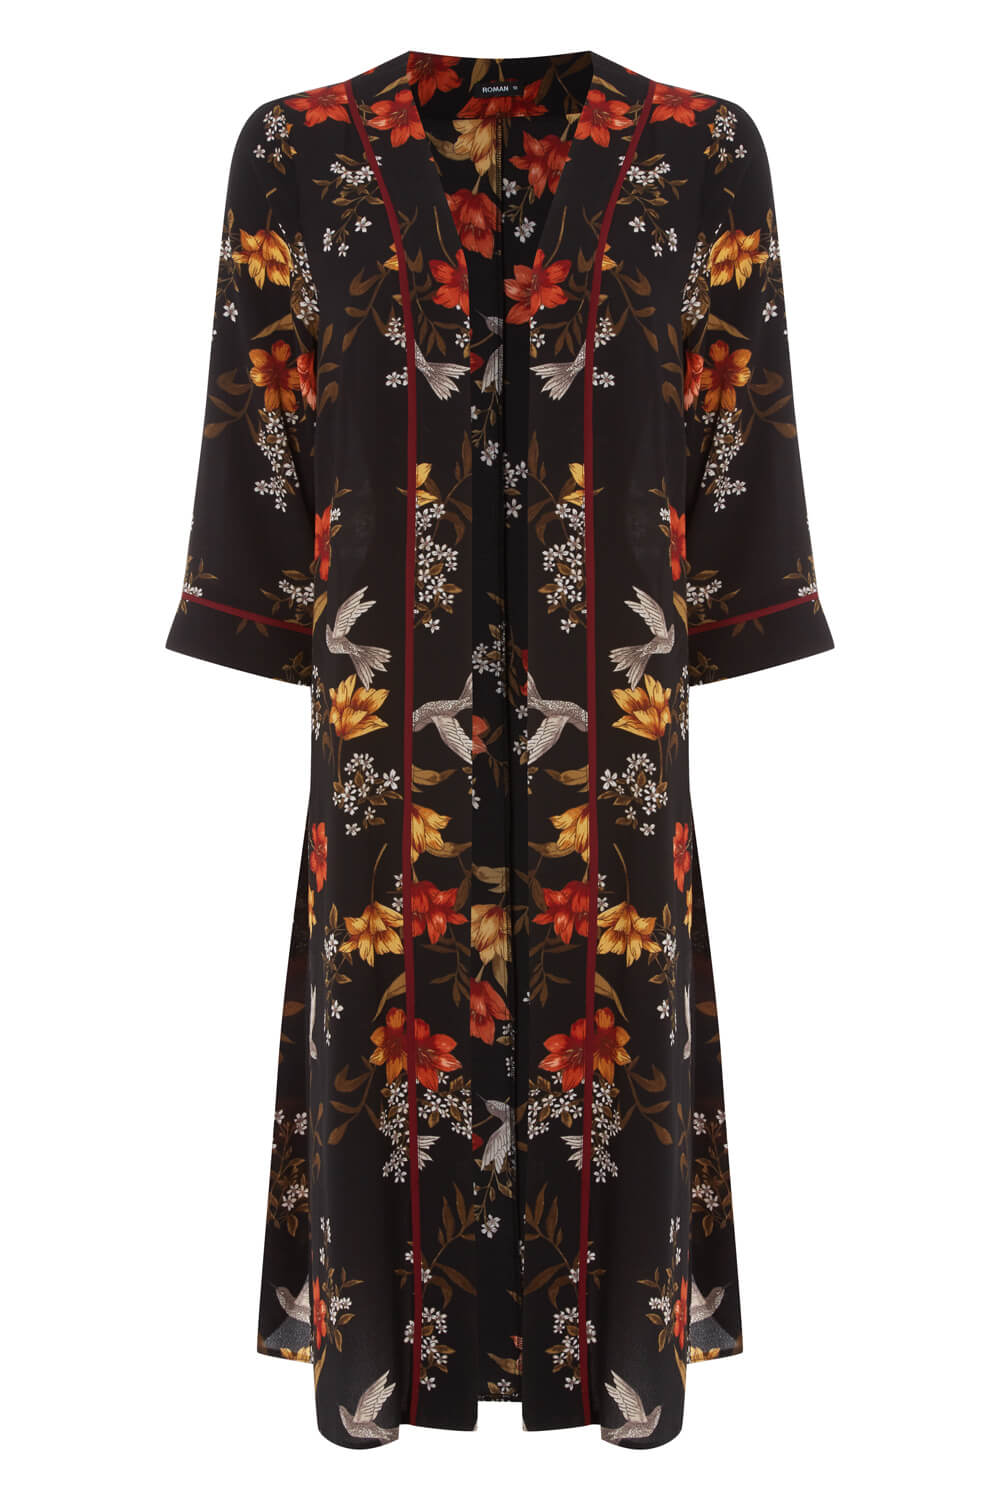 Roman-Originals-Women-039-s-Floral-Longline-Jacket-Kimono-in-Multi-Sizes-10-20 thumbnail 10